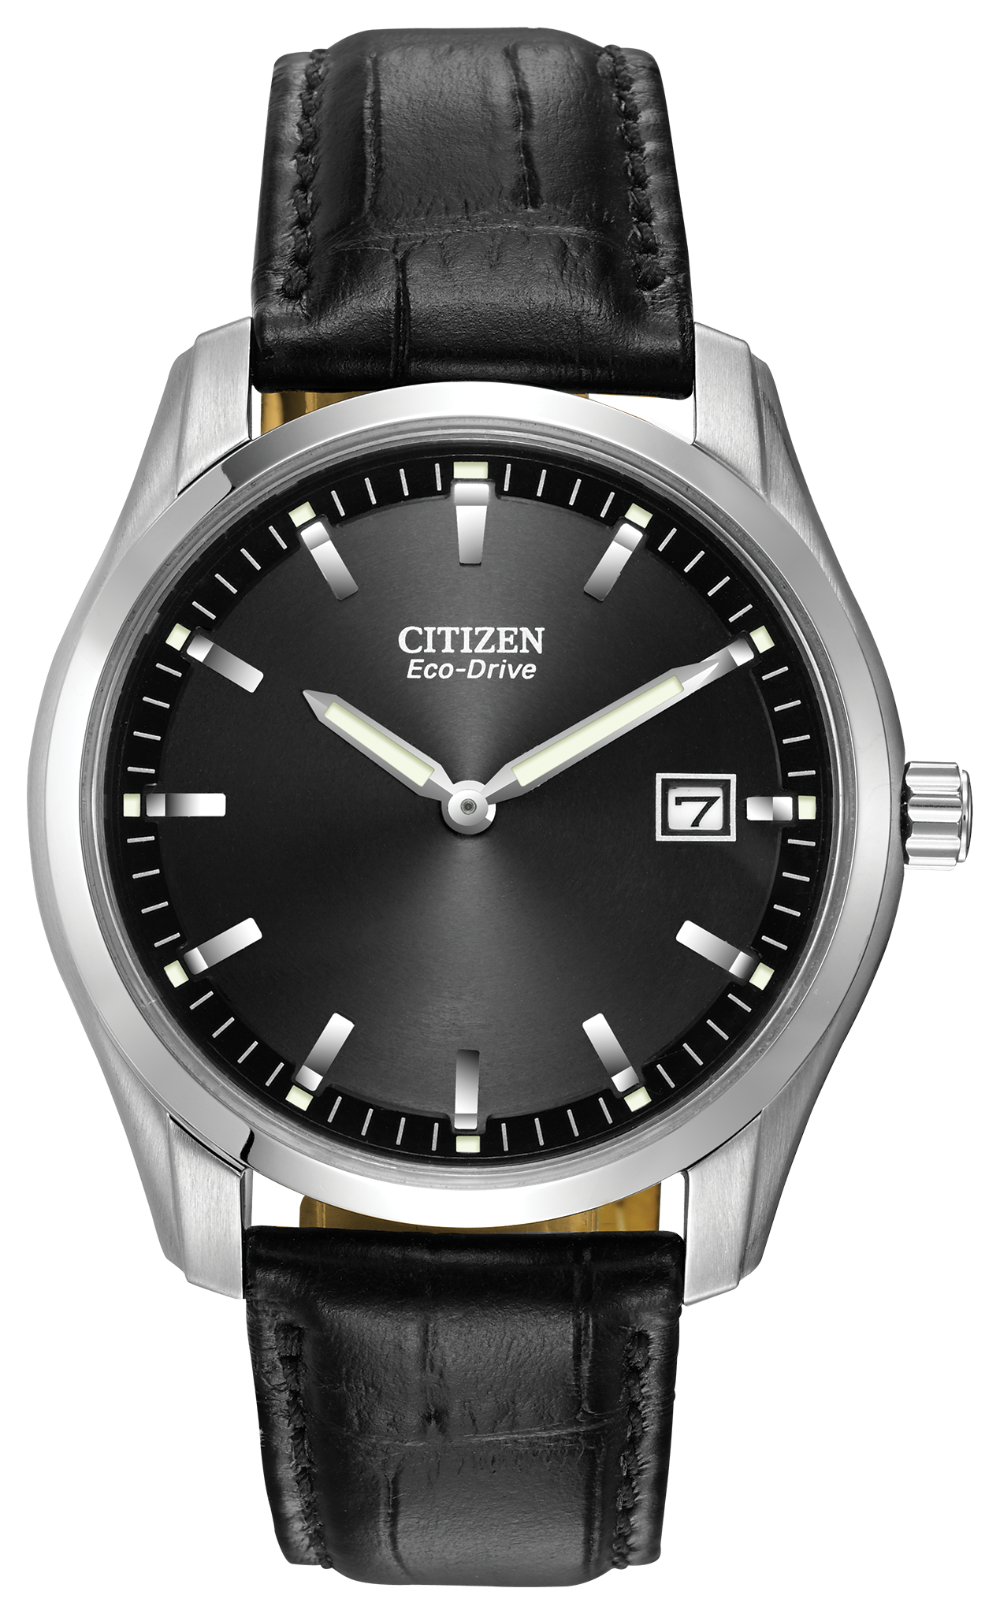 Gents Stainless Steel Citizen Eco-Drive Watch